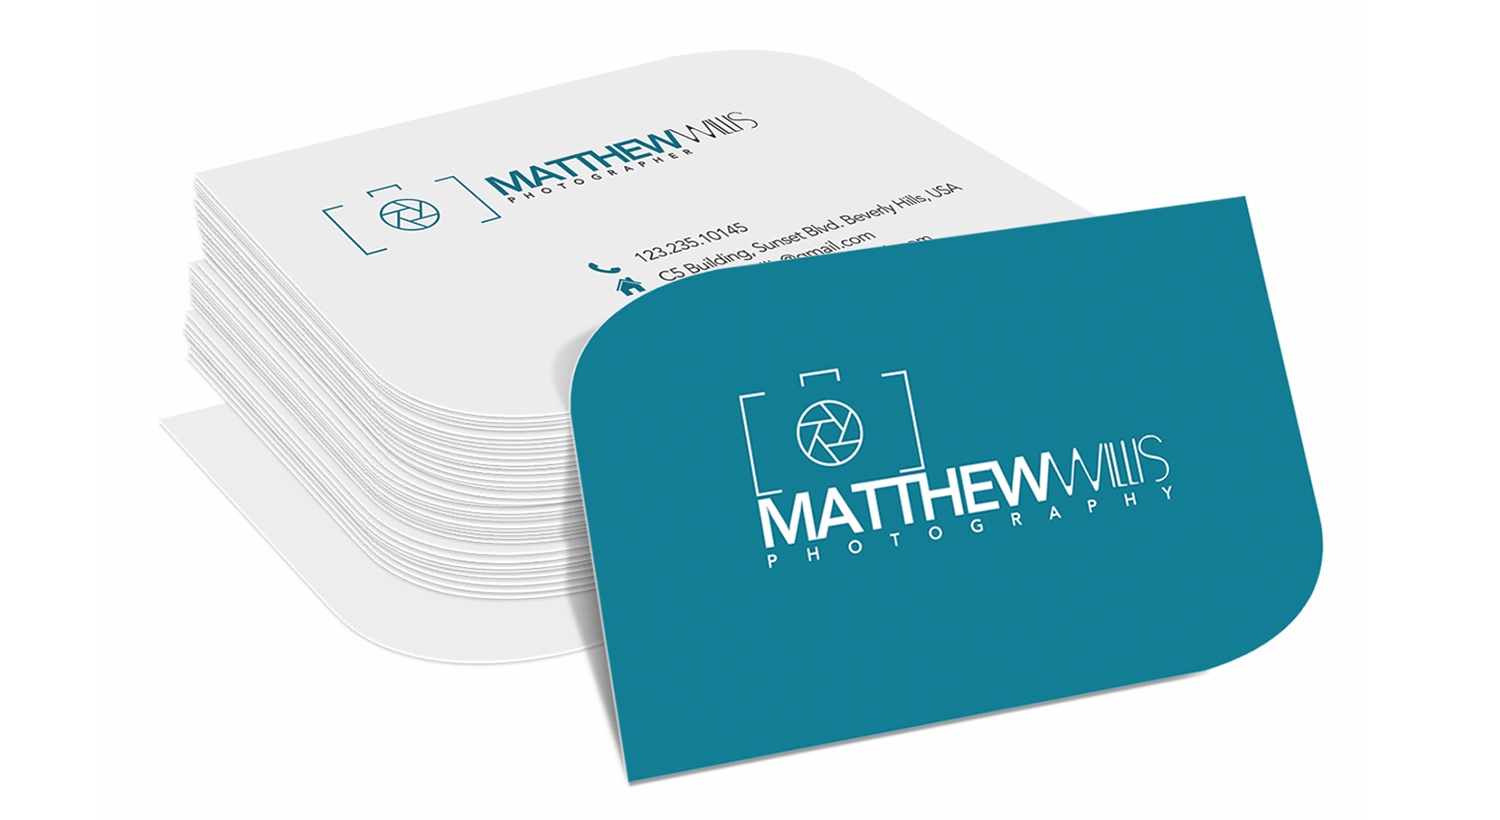 Design trend in business cards